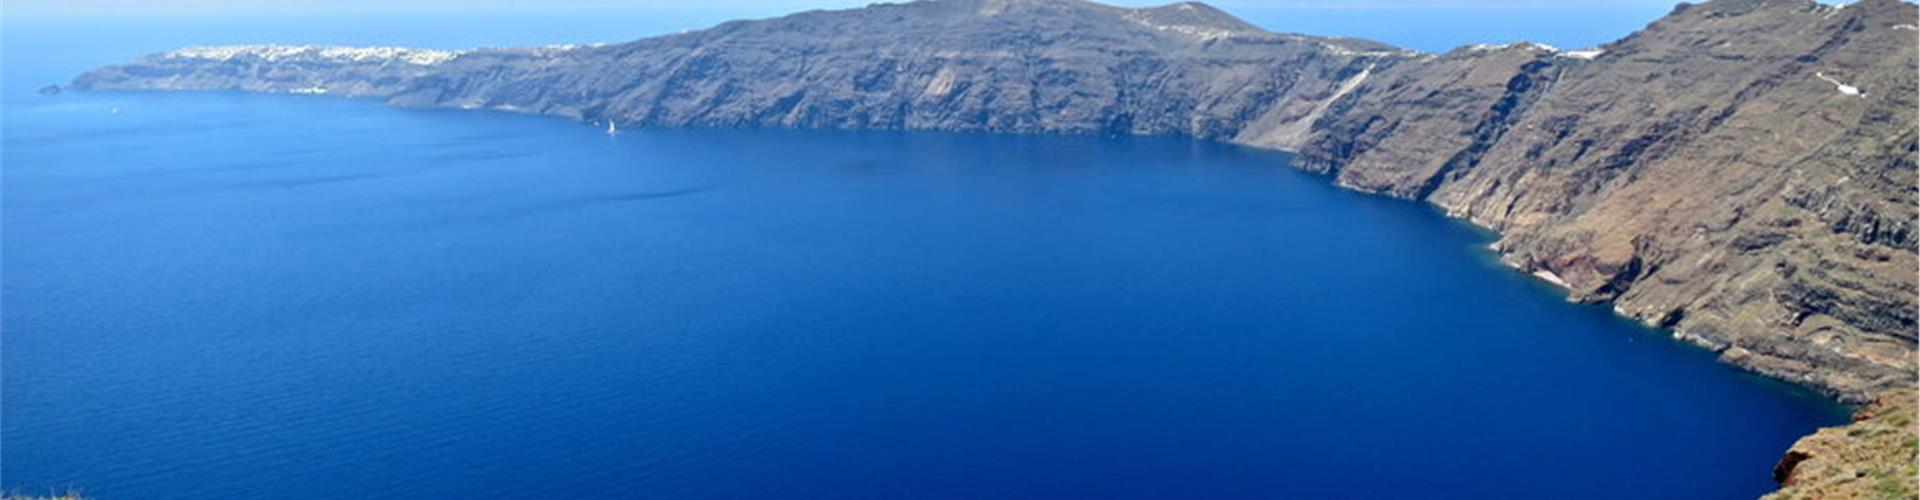 How to get from the airport to Fira and the rest of Santorini